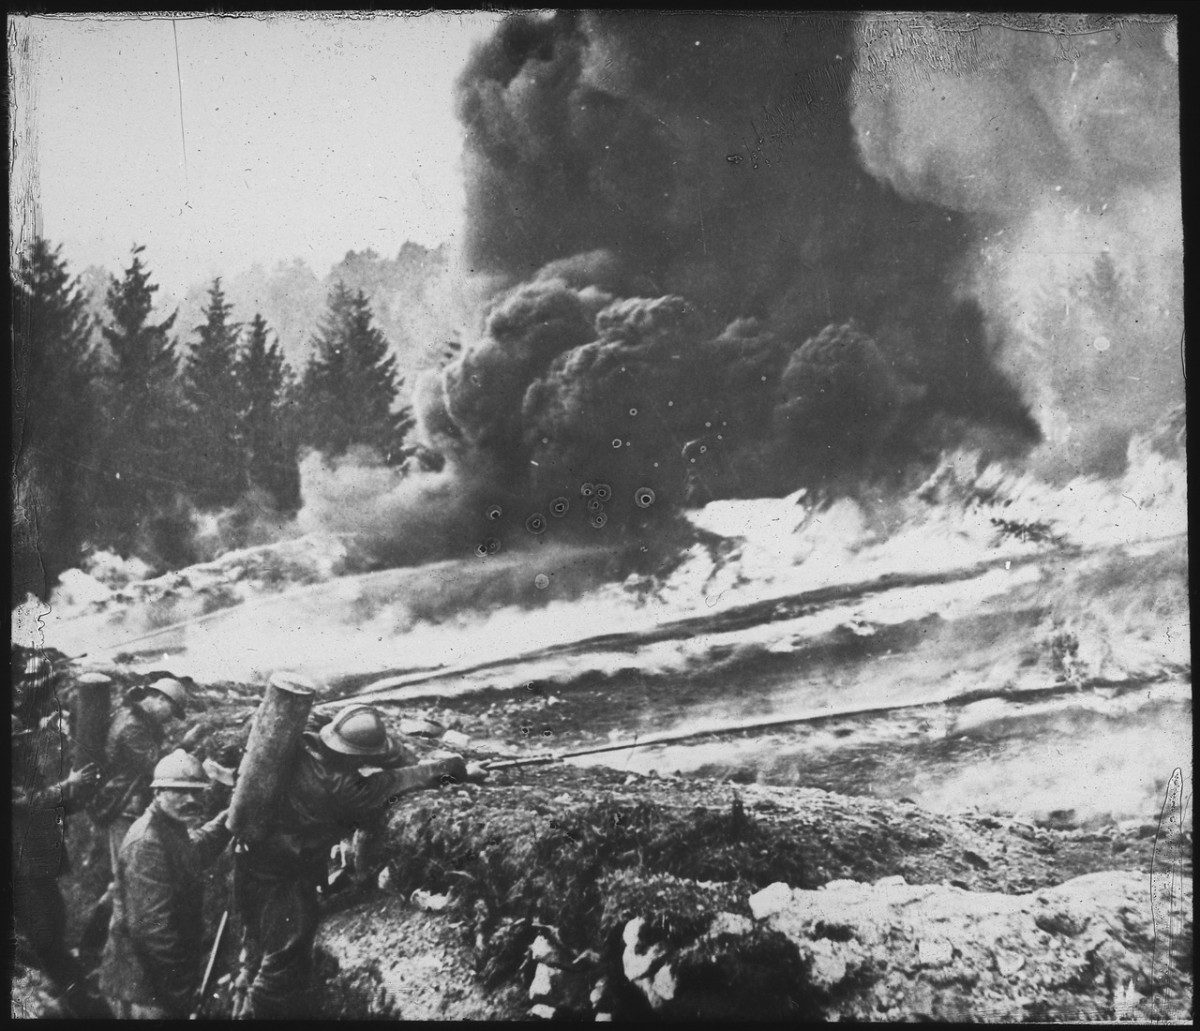 Flamethrowers were used for the first time in WWI, this picture shows French troops in action.